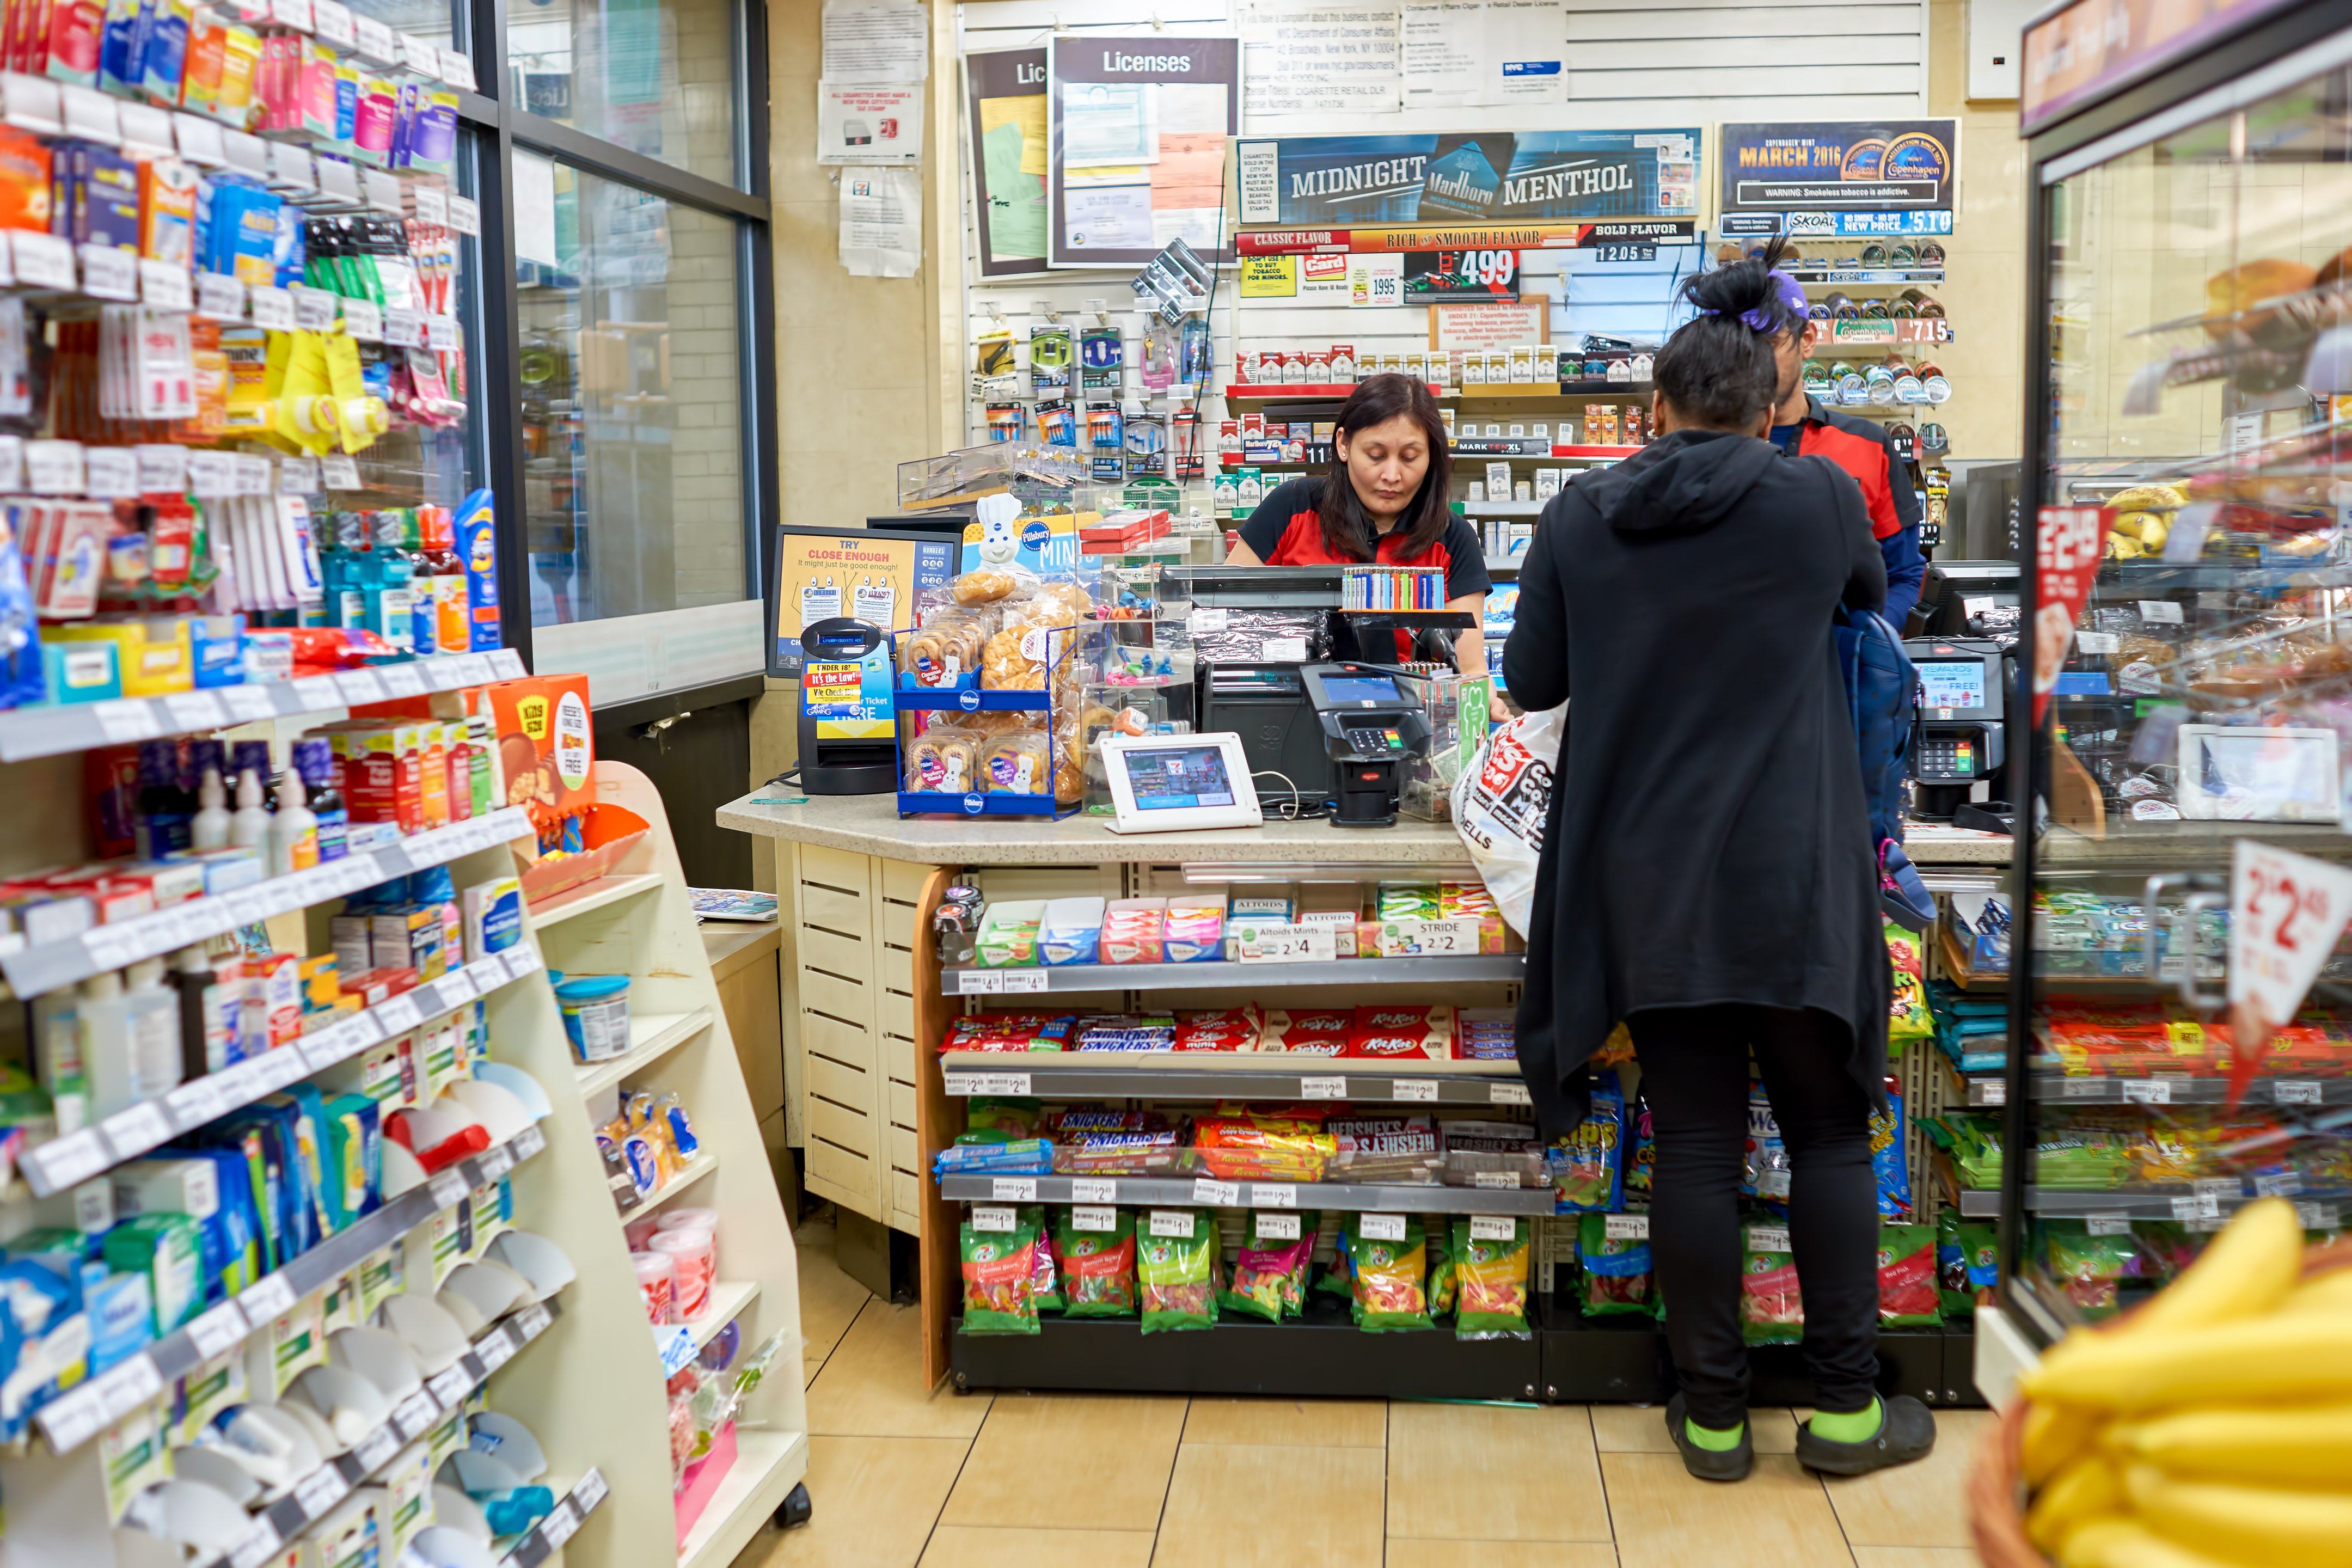 convenience store market research inside c store